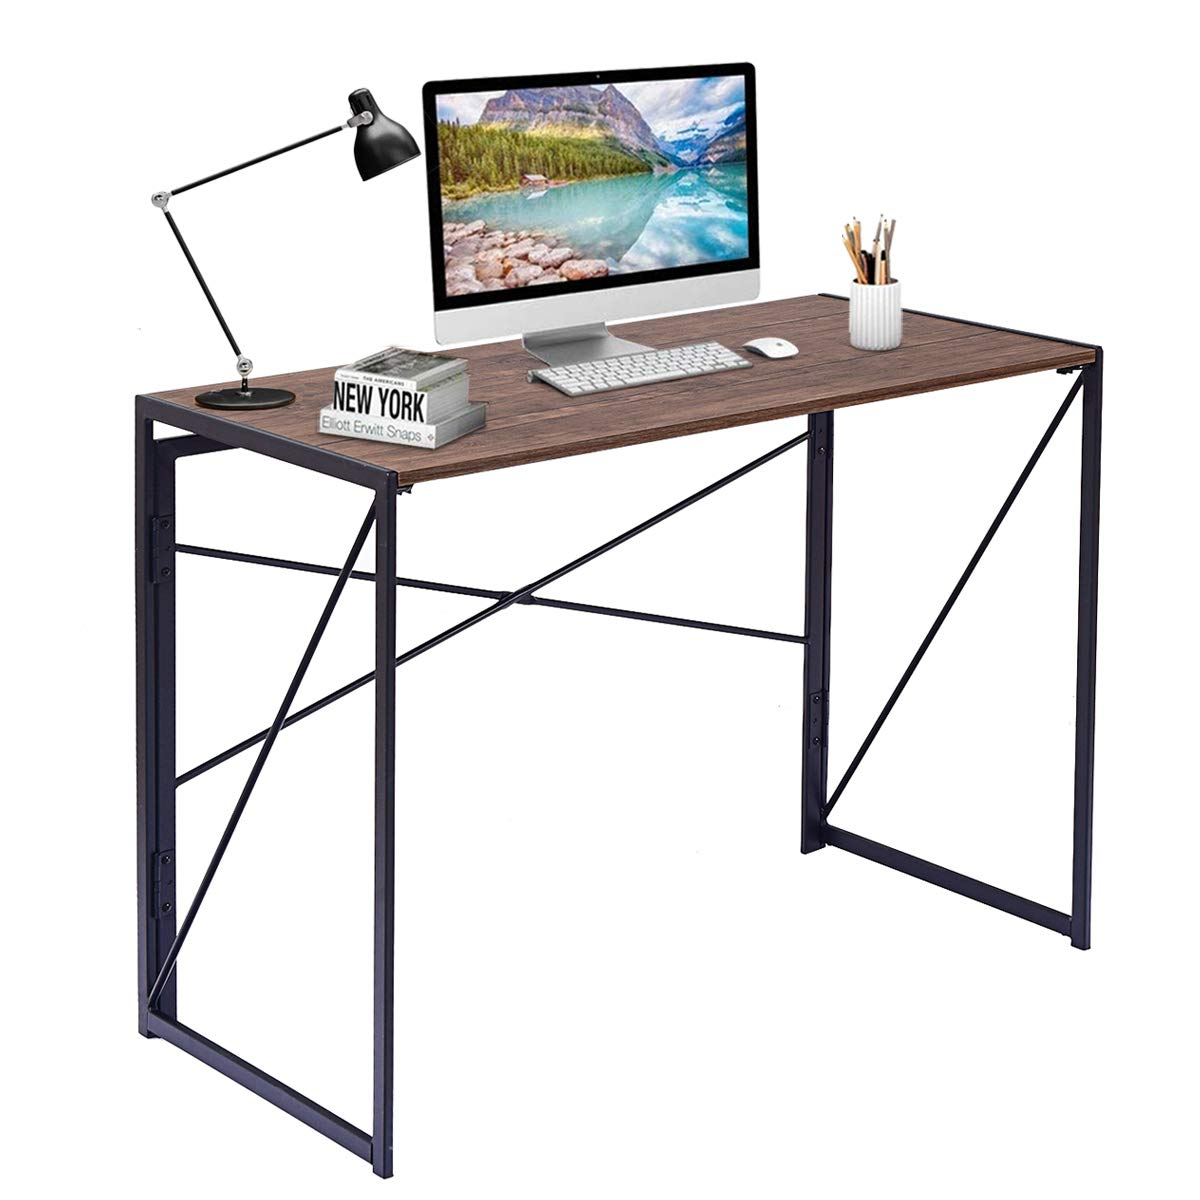 Tangkula Folding Computer Desk, Home Office Modern Simple PC Laptop Table, Studying Writing Desk, Rectangular Workstation Furniture, Folding Table(39.5'' L×20'' W×29.5'' H)